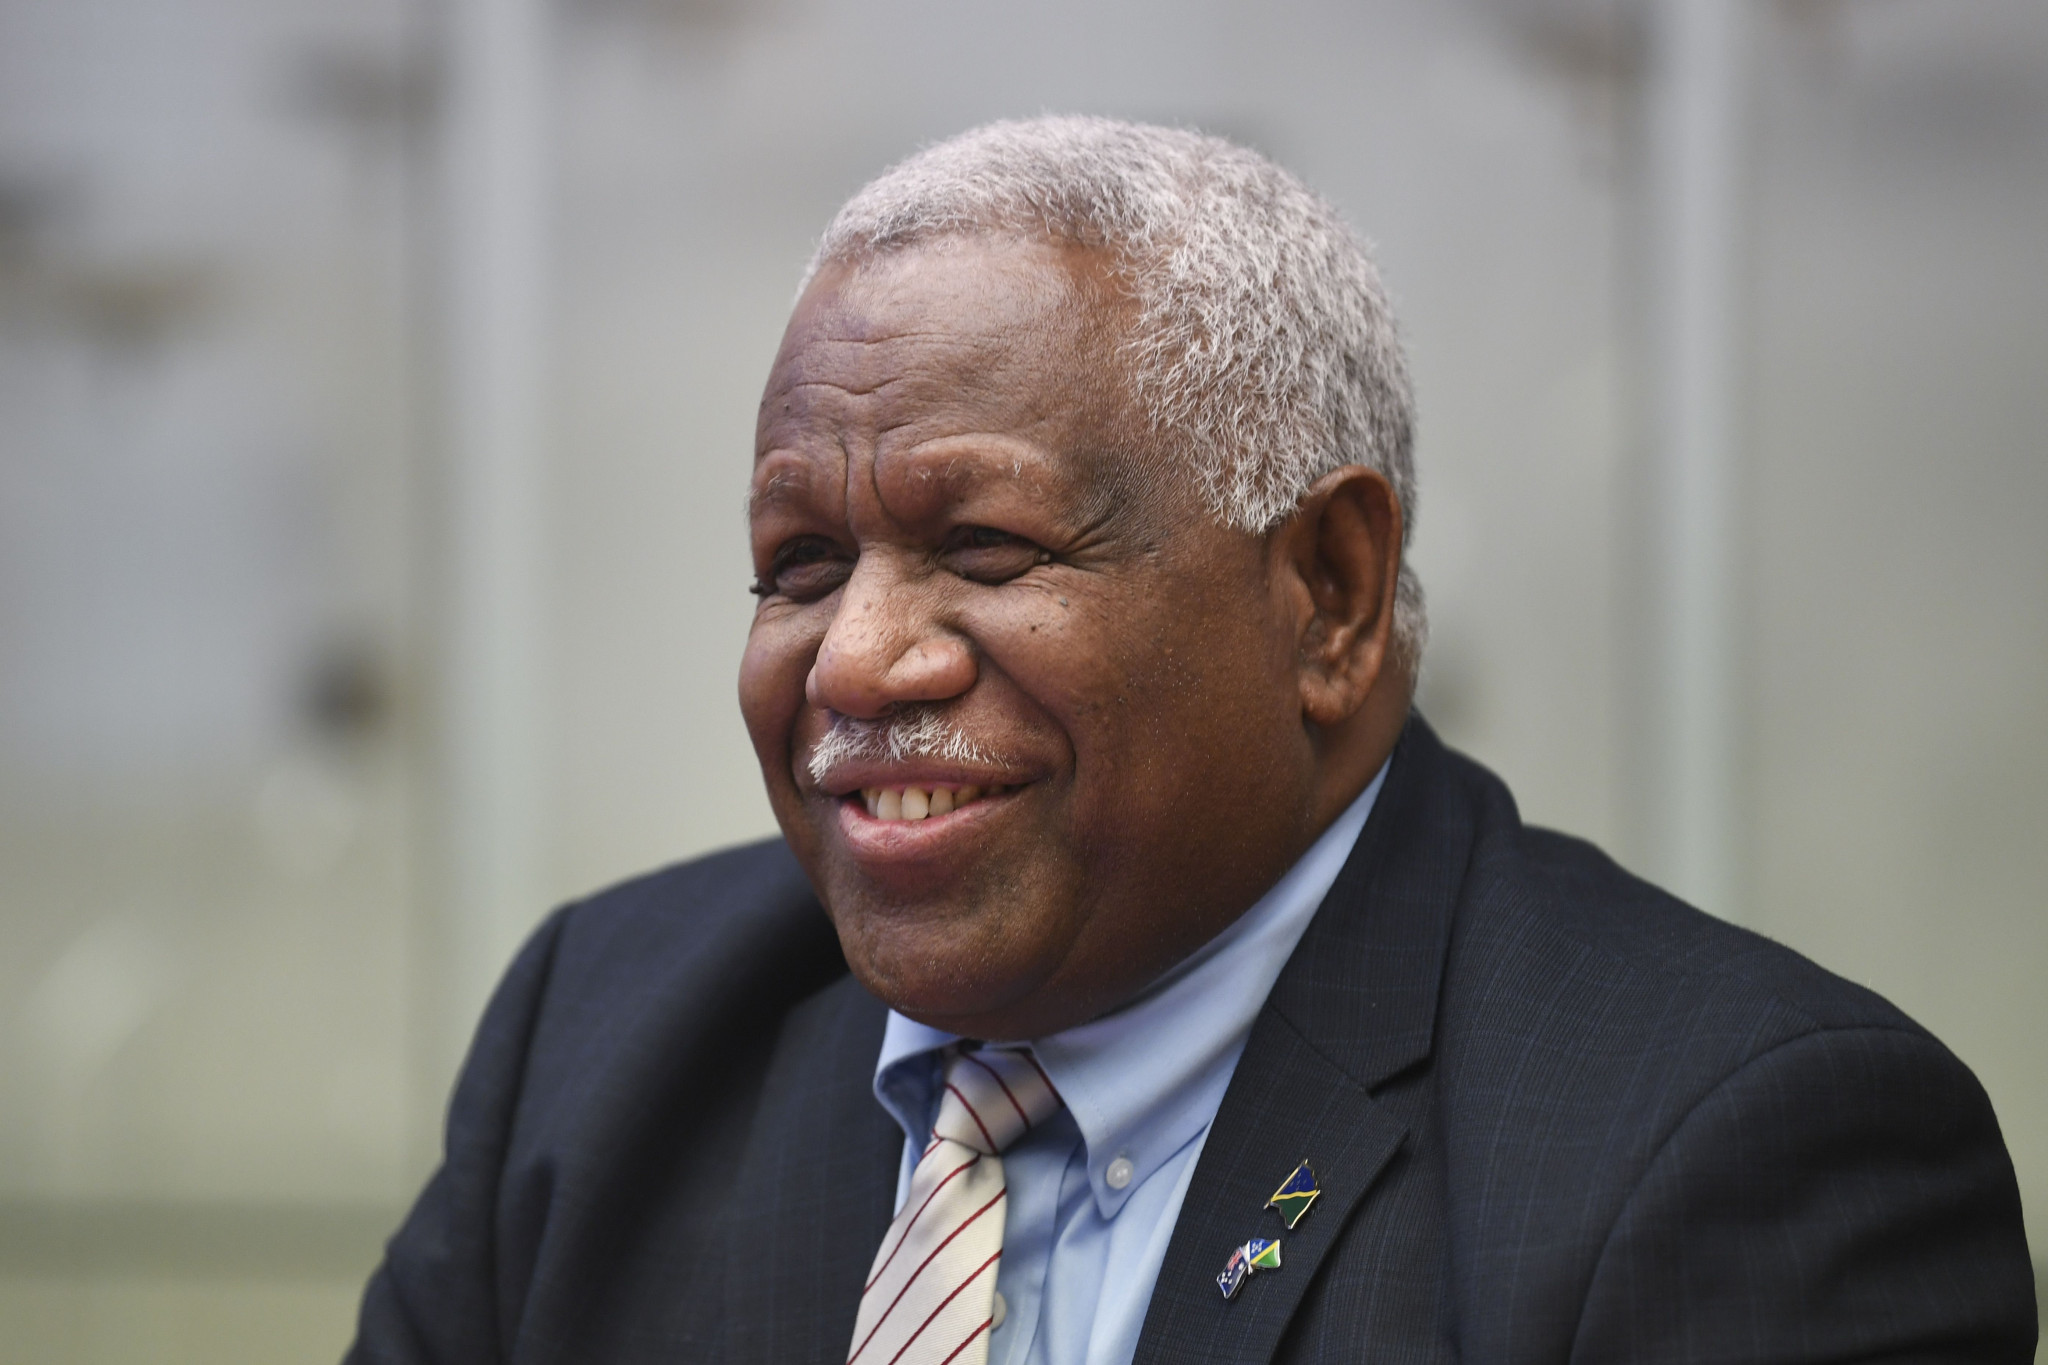 Solomon Islands Prime Minister pledges backing for 2023 Pacific Games